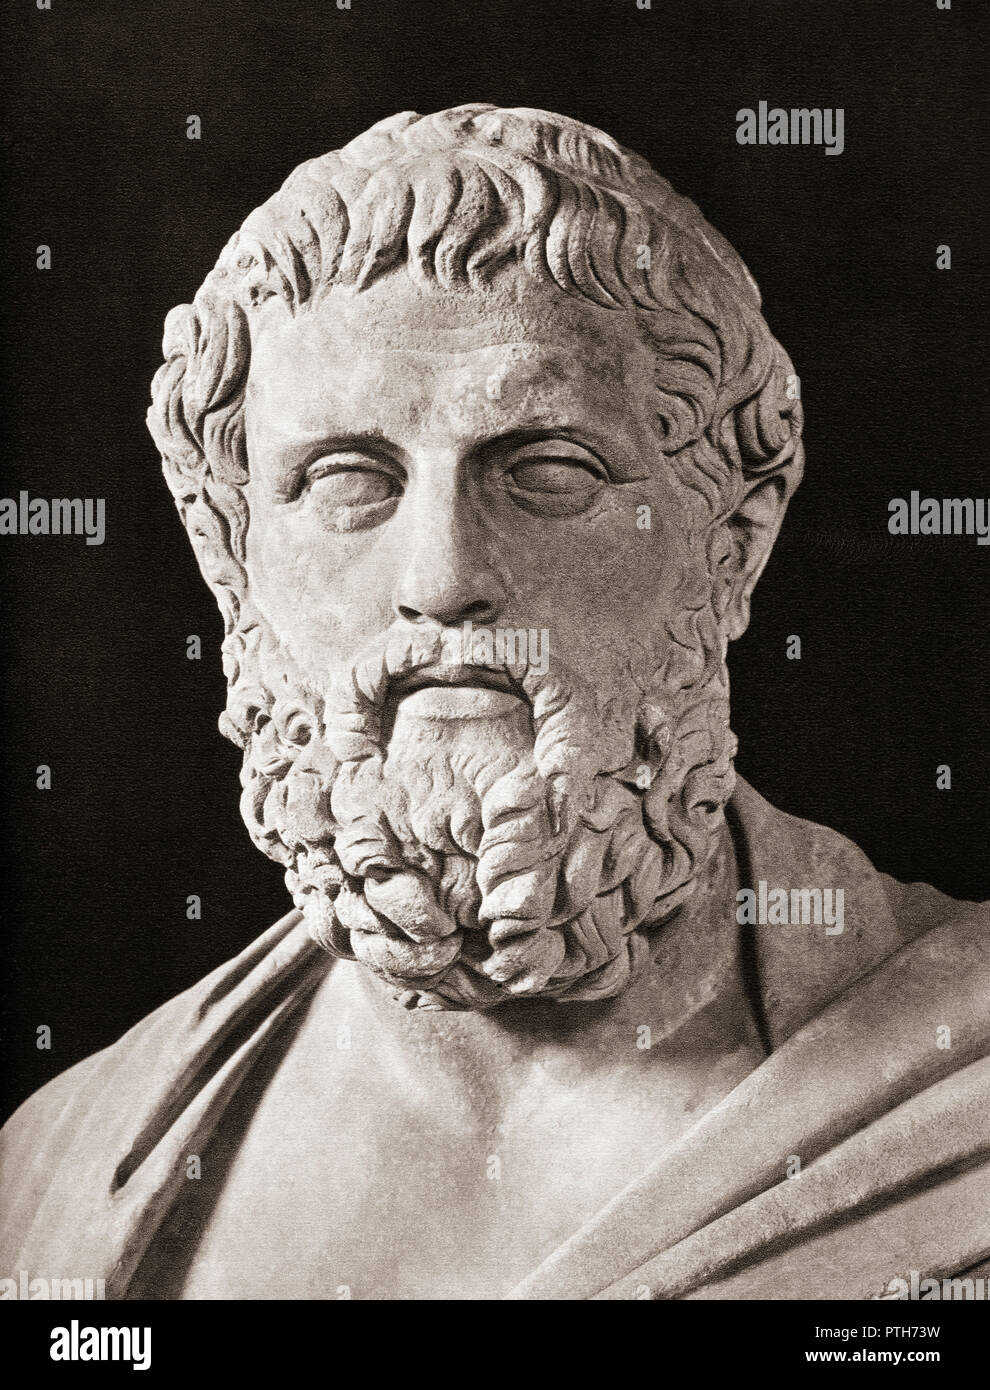 Bust of Sophocles,  c. 497/6 – 406/5 BC. Ancient Greek tragedian. - Stock Image